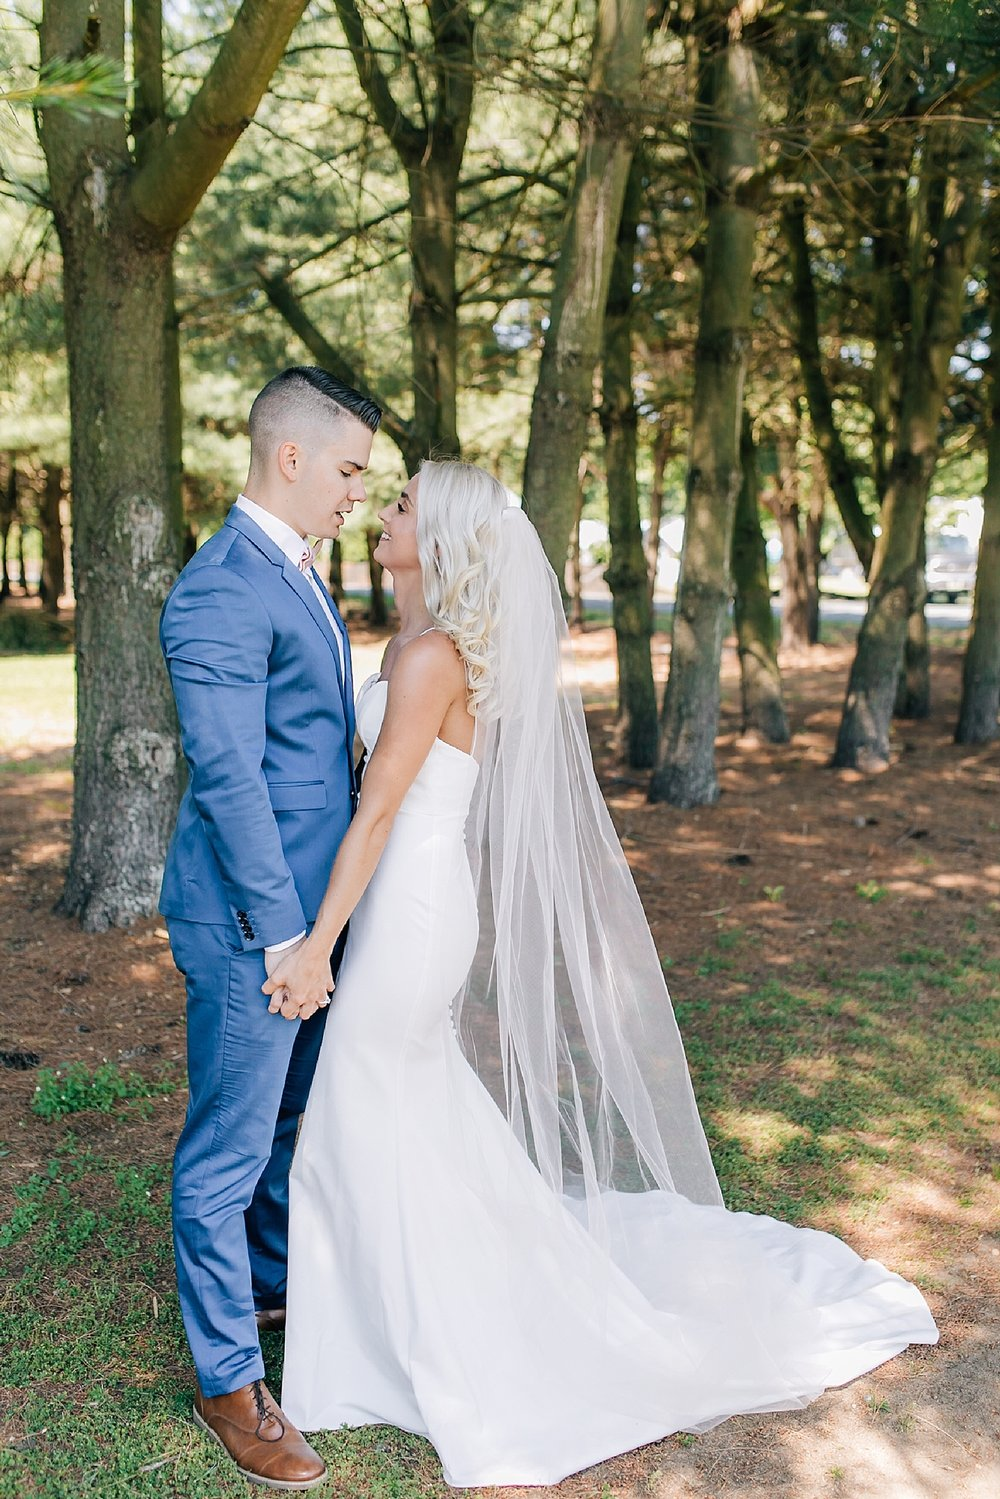 A Unique Outdoor Summer Wedding at Bast Brothers Garden Center by Magdalena Studios_0014.jpg